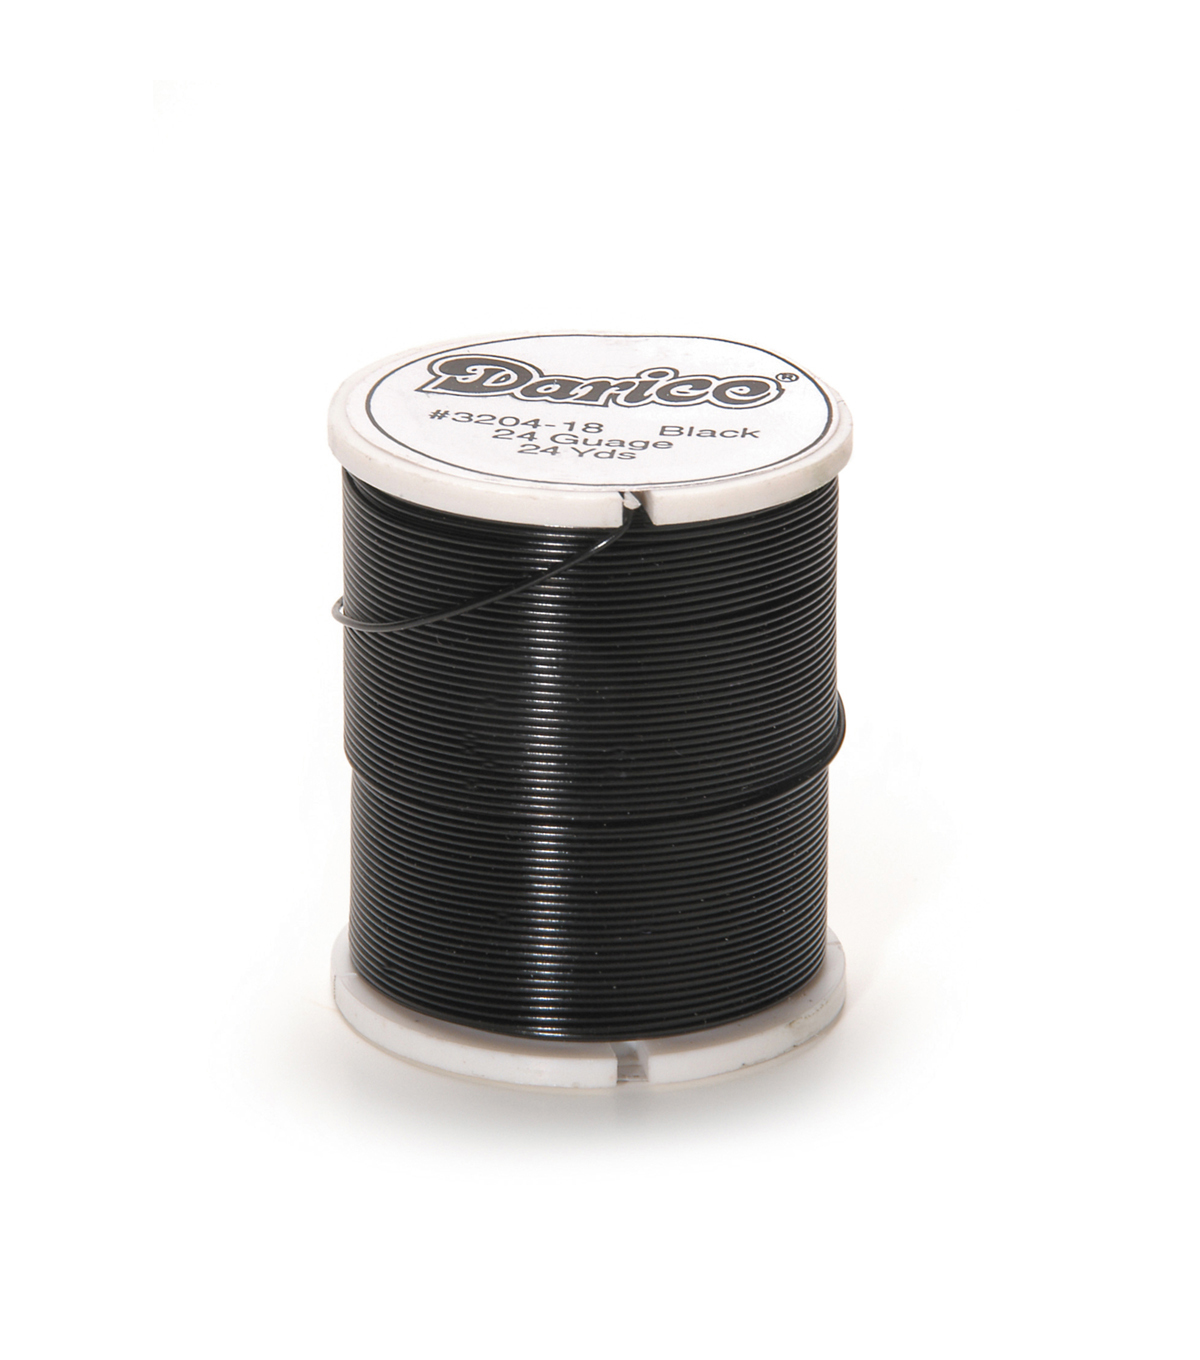 26 Gauge Craft Wire, Black, 24 yards